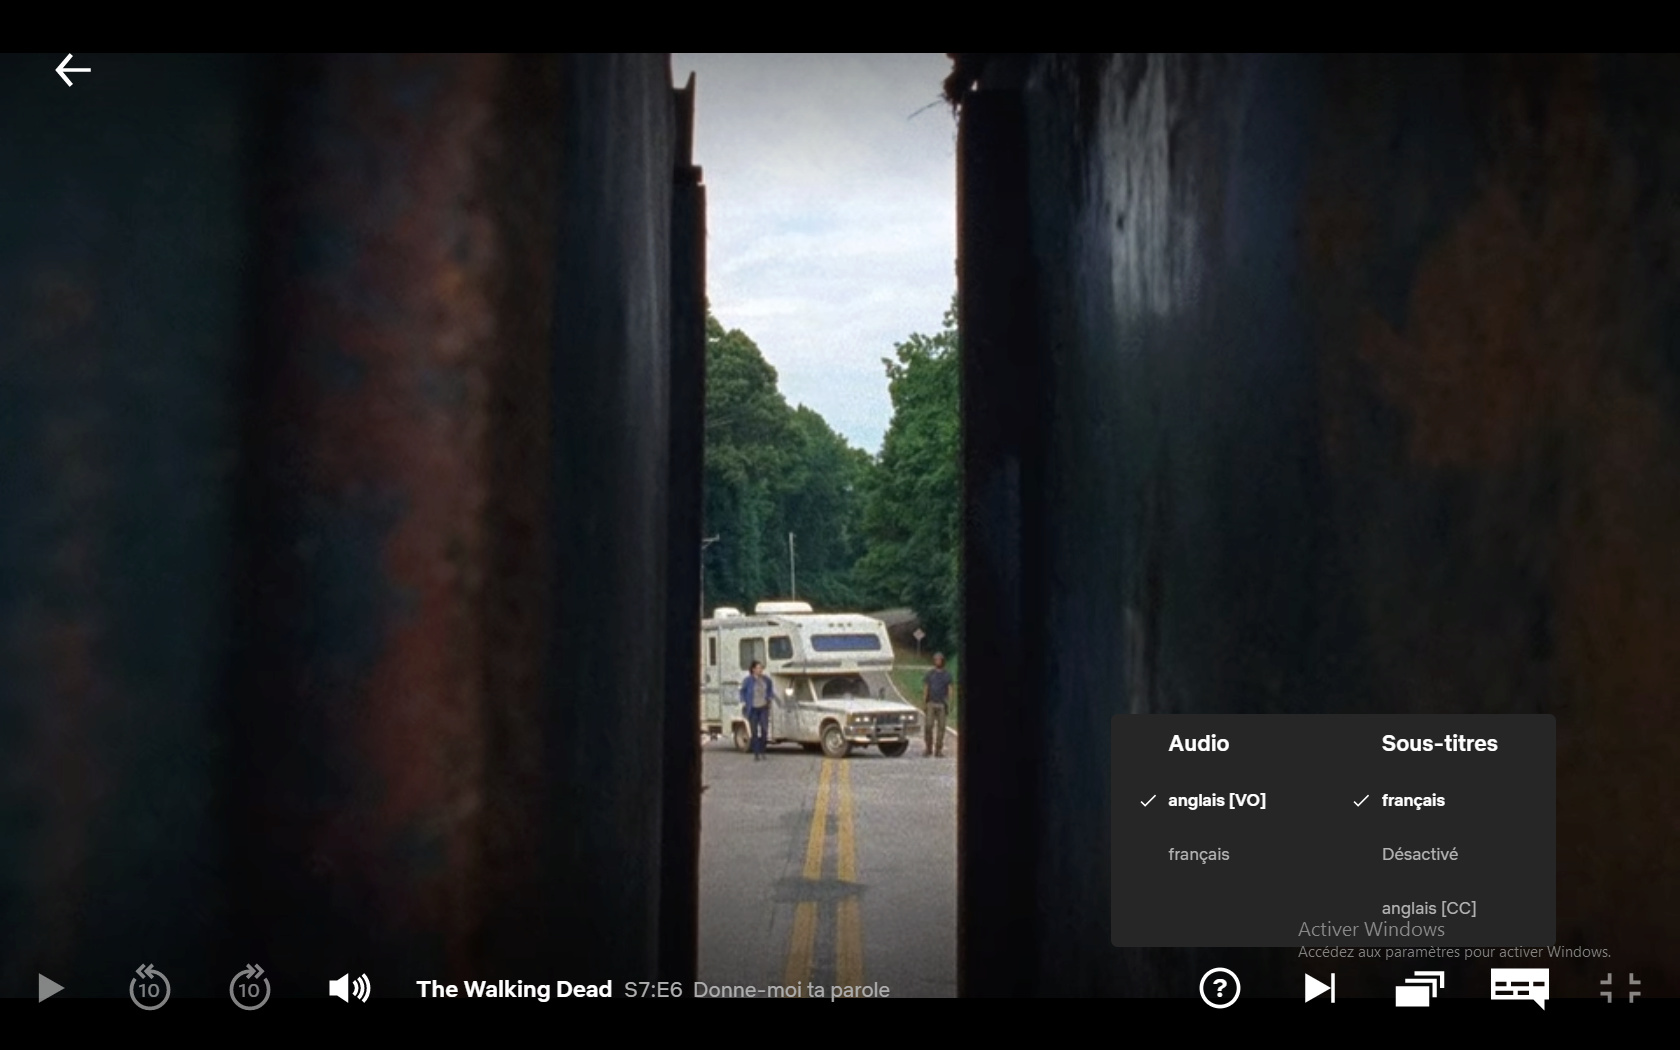 The Walking dead, storybording with Google Earth and Street View - Page 6 Captur16